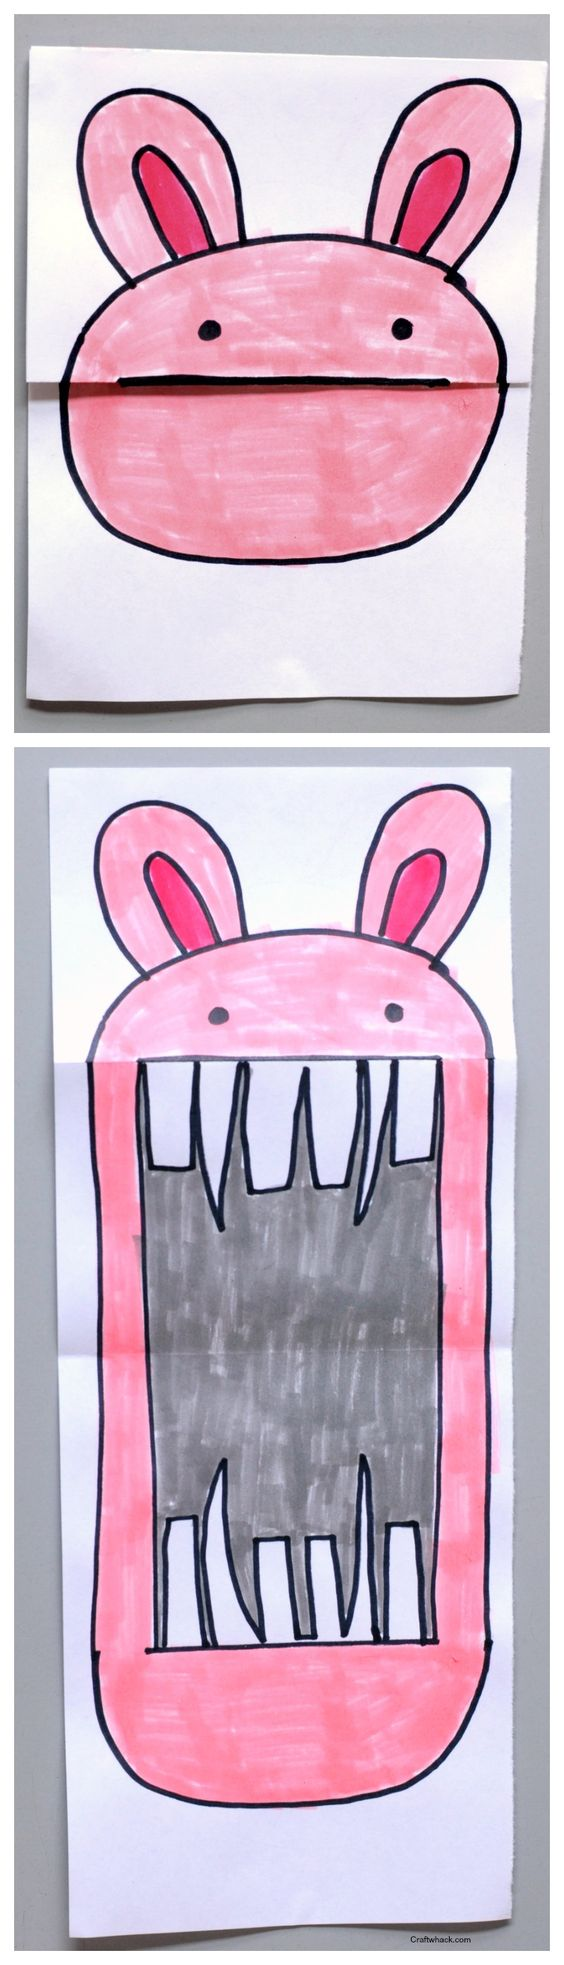 Surprise Ferocious Beings Paper Project for Toddlers